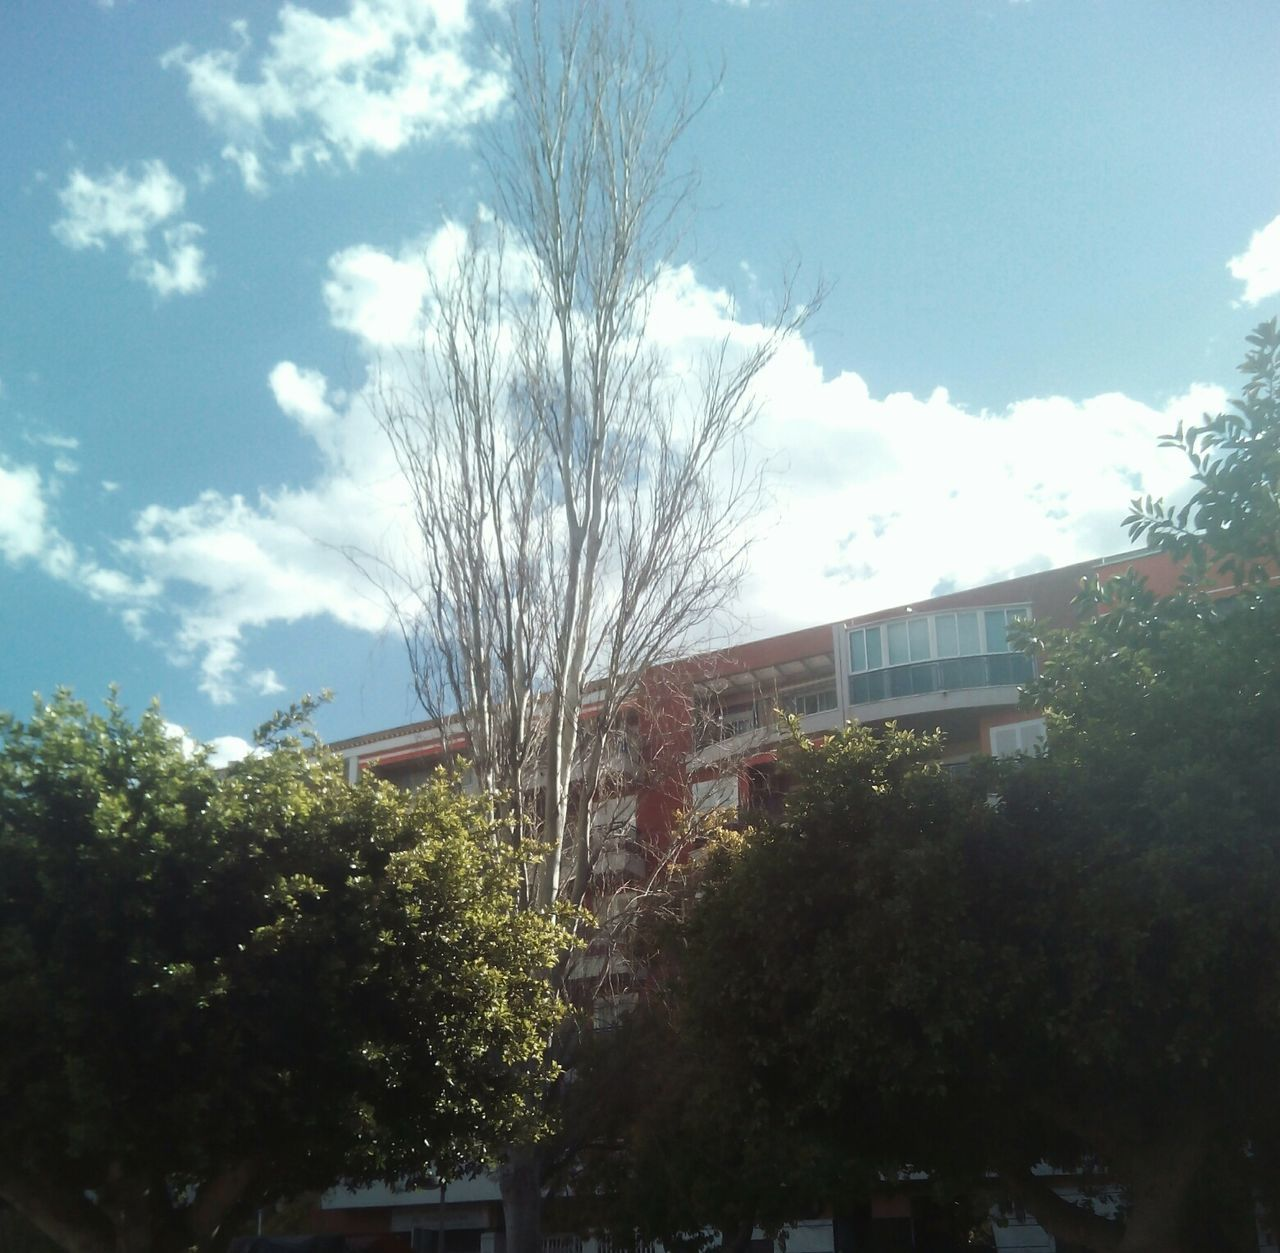 tree, sky, no people, architecture, nature, growth, built structure, outdoors, day, scenery, building exterior, residential, city